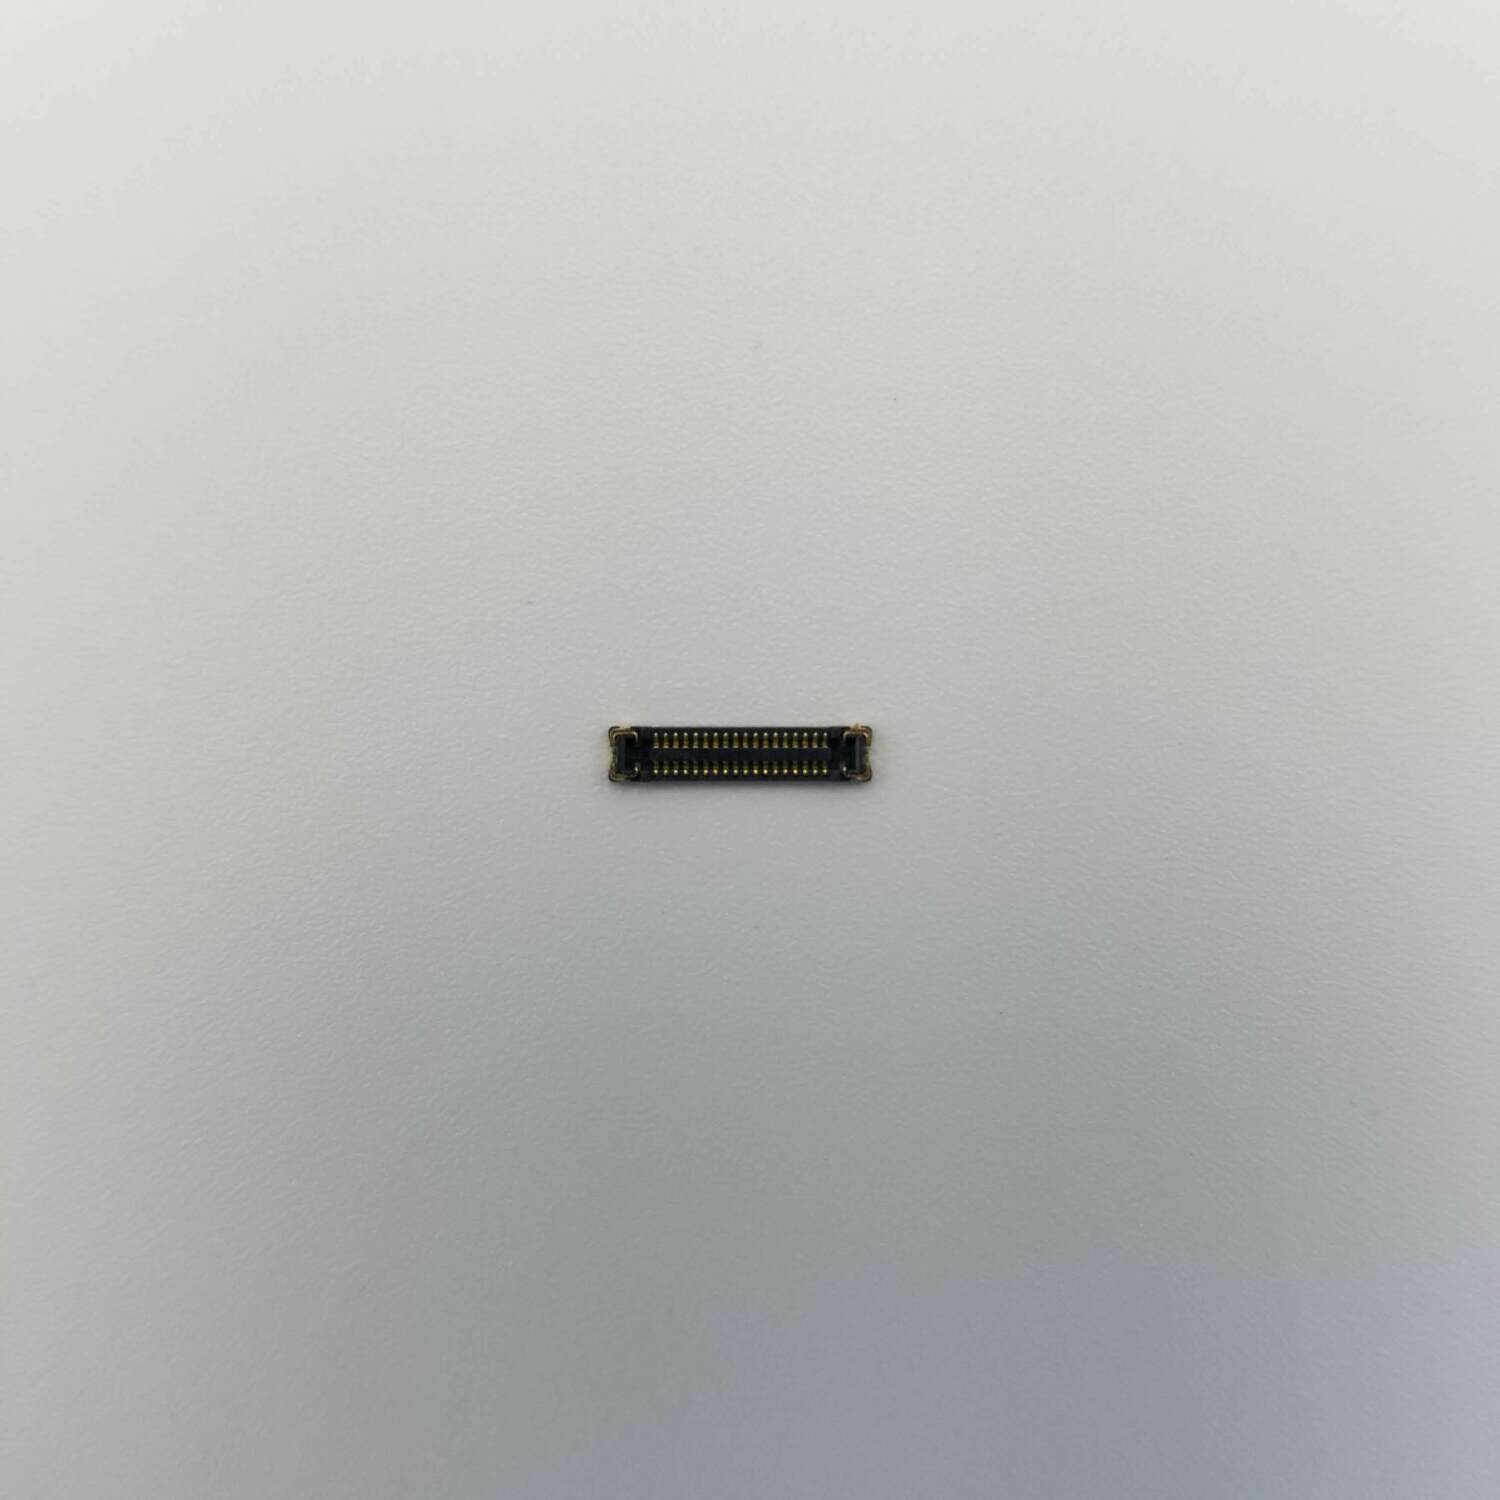 iPhone 6 / 6+ / 6s / 6s+ front camera connector